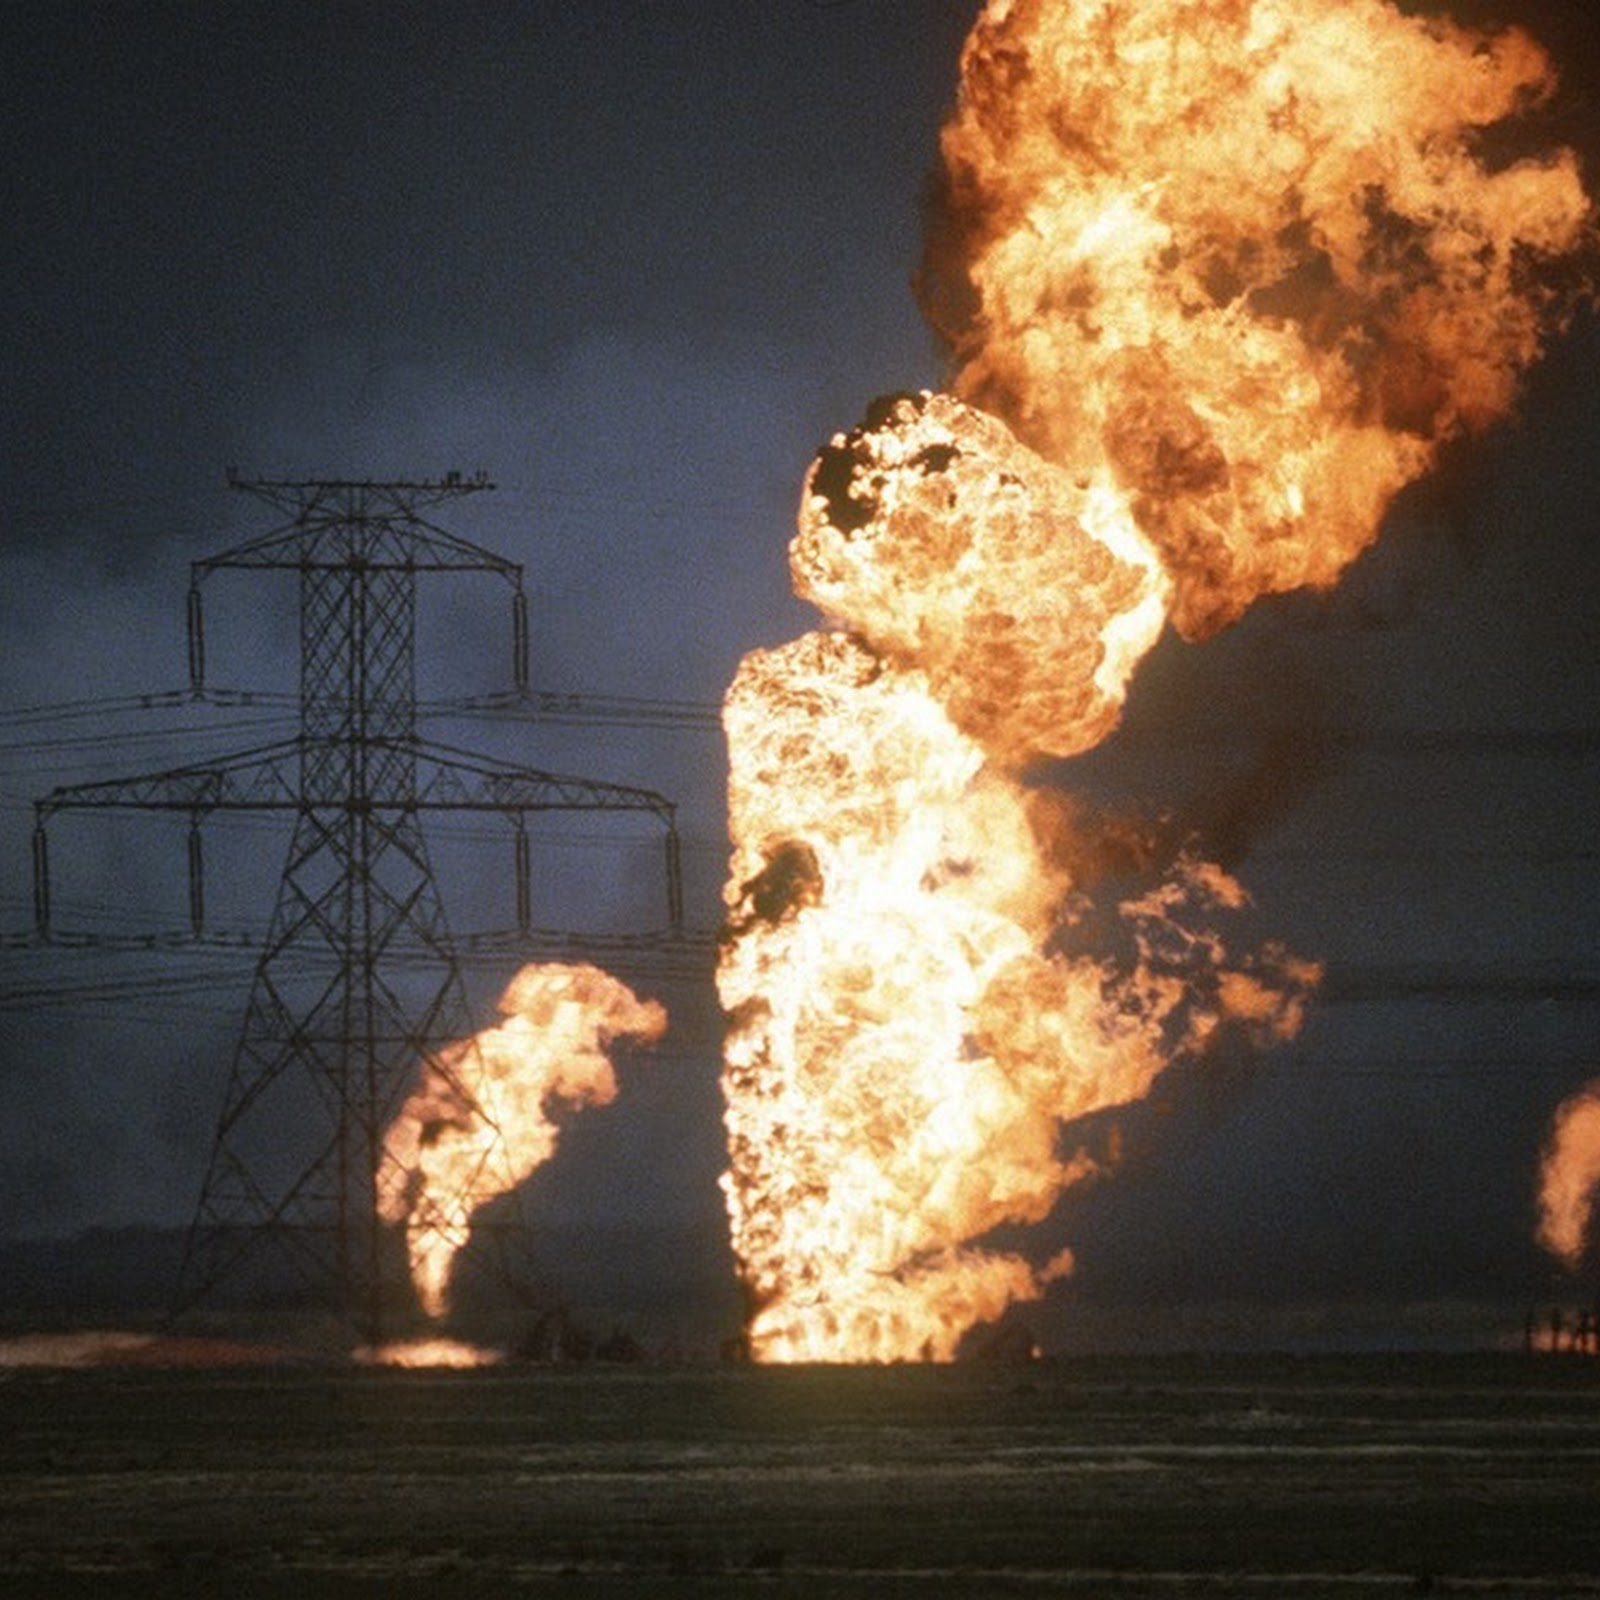 How The Soviets Put Out Oil Well Fires by Using Nuclear Bombs